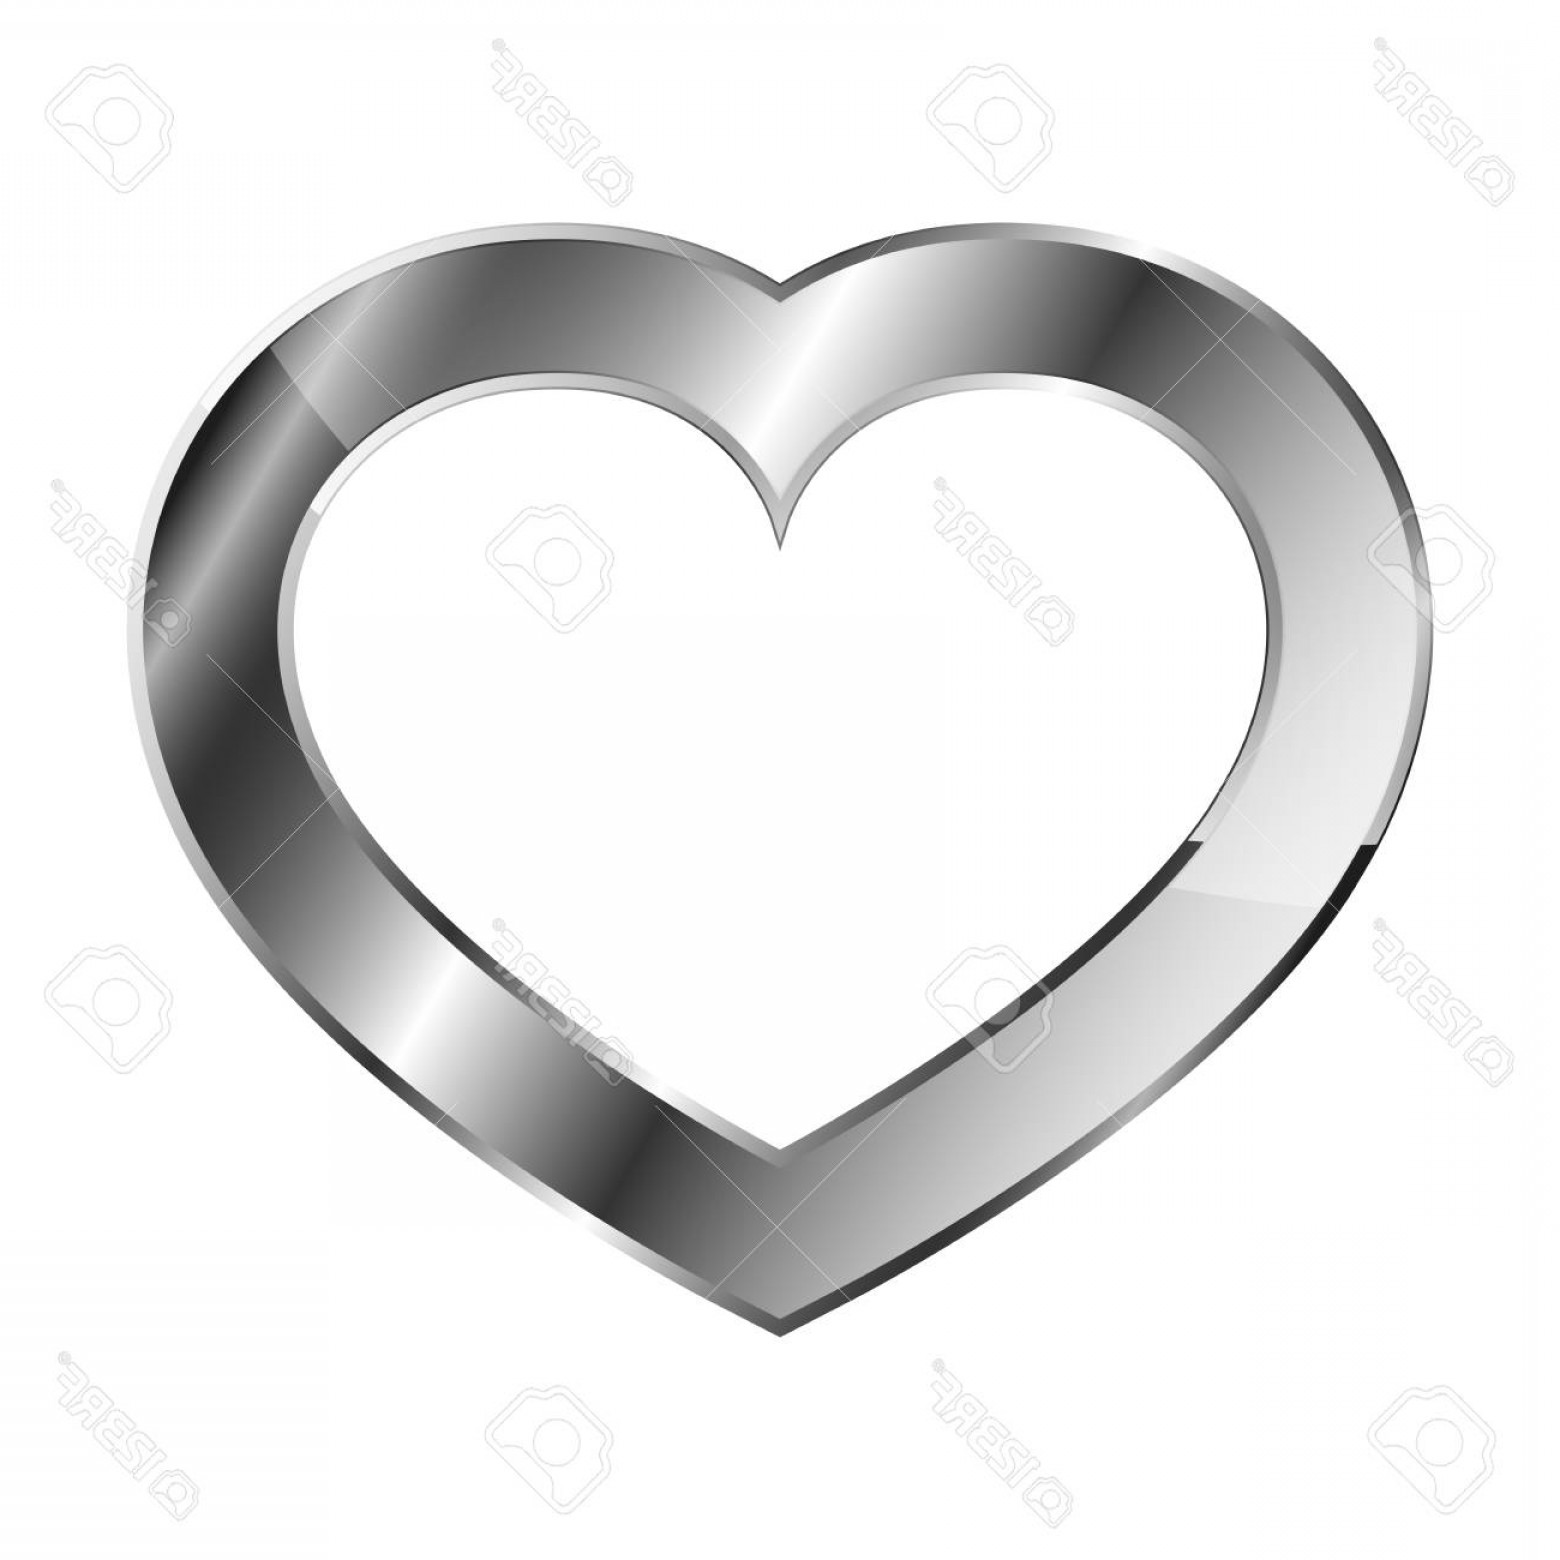 Silver Heart Vector: Photostock Vector Chrome Or Silver Heart Icon Vector Illustration Glossy Heart On White Background